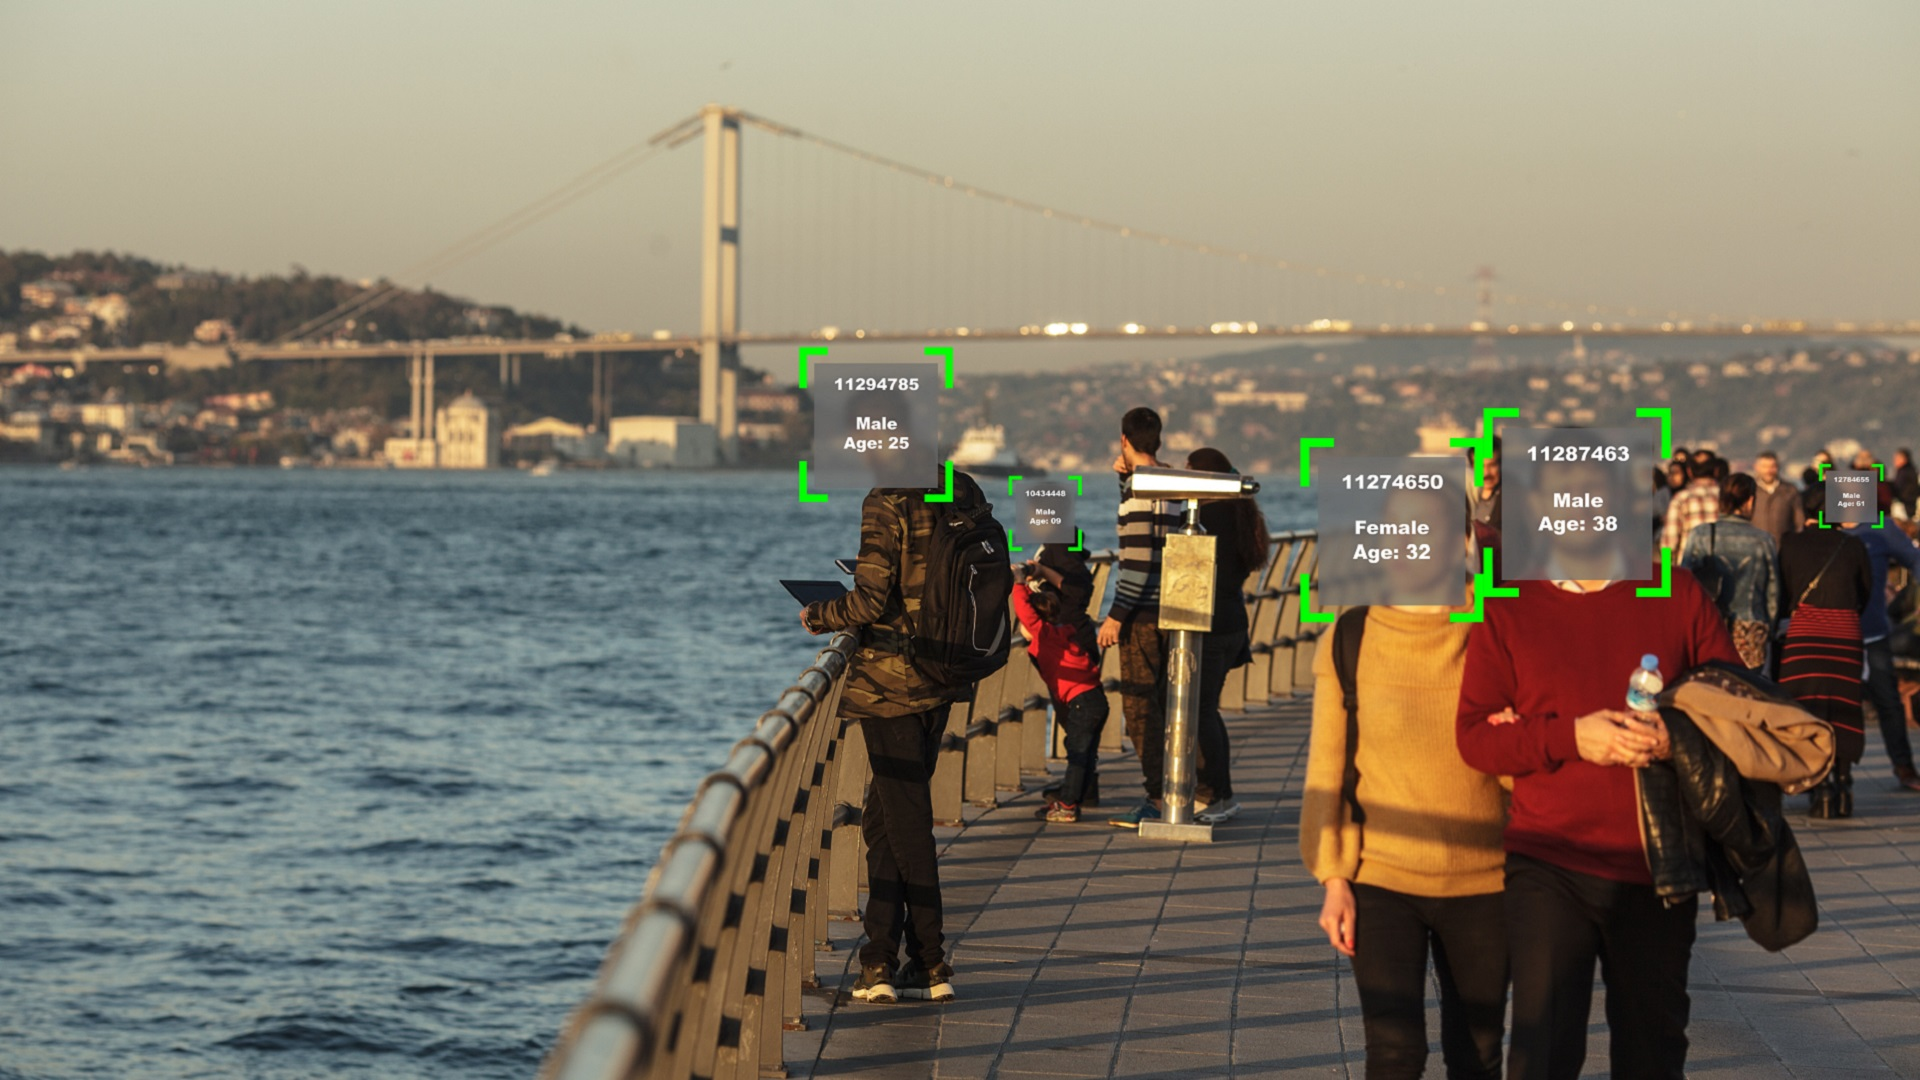 facial recognition systems_AI_clearview ai